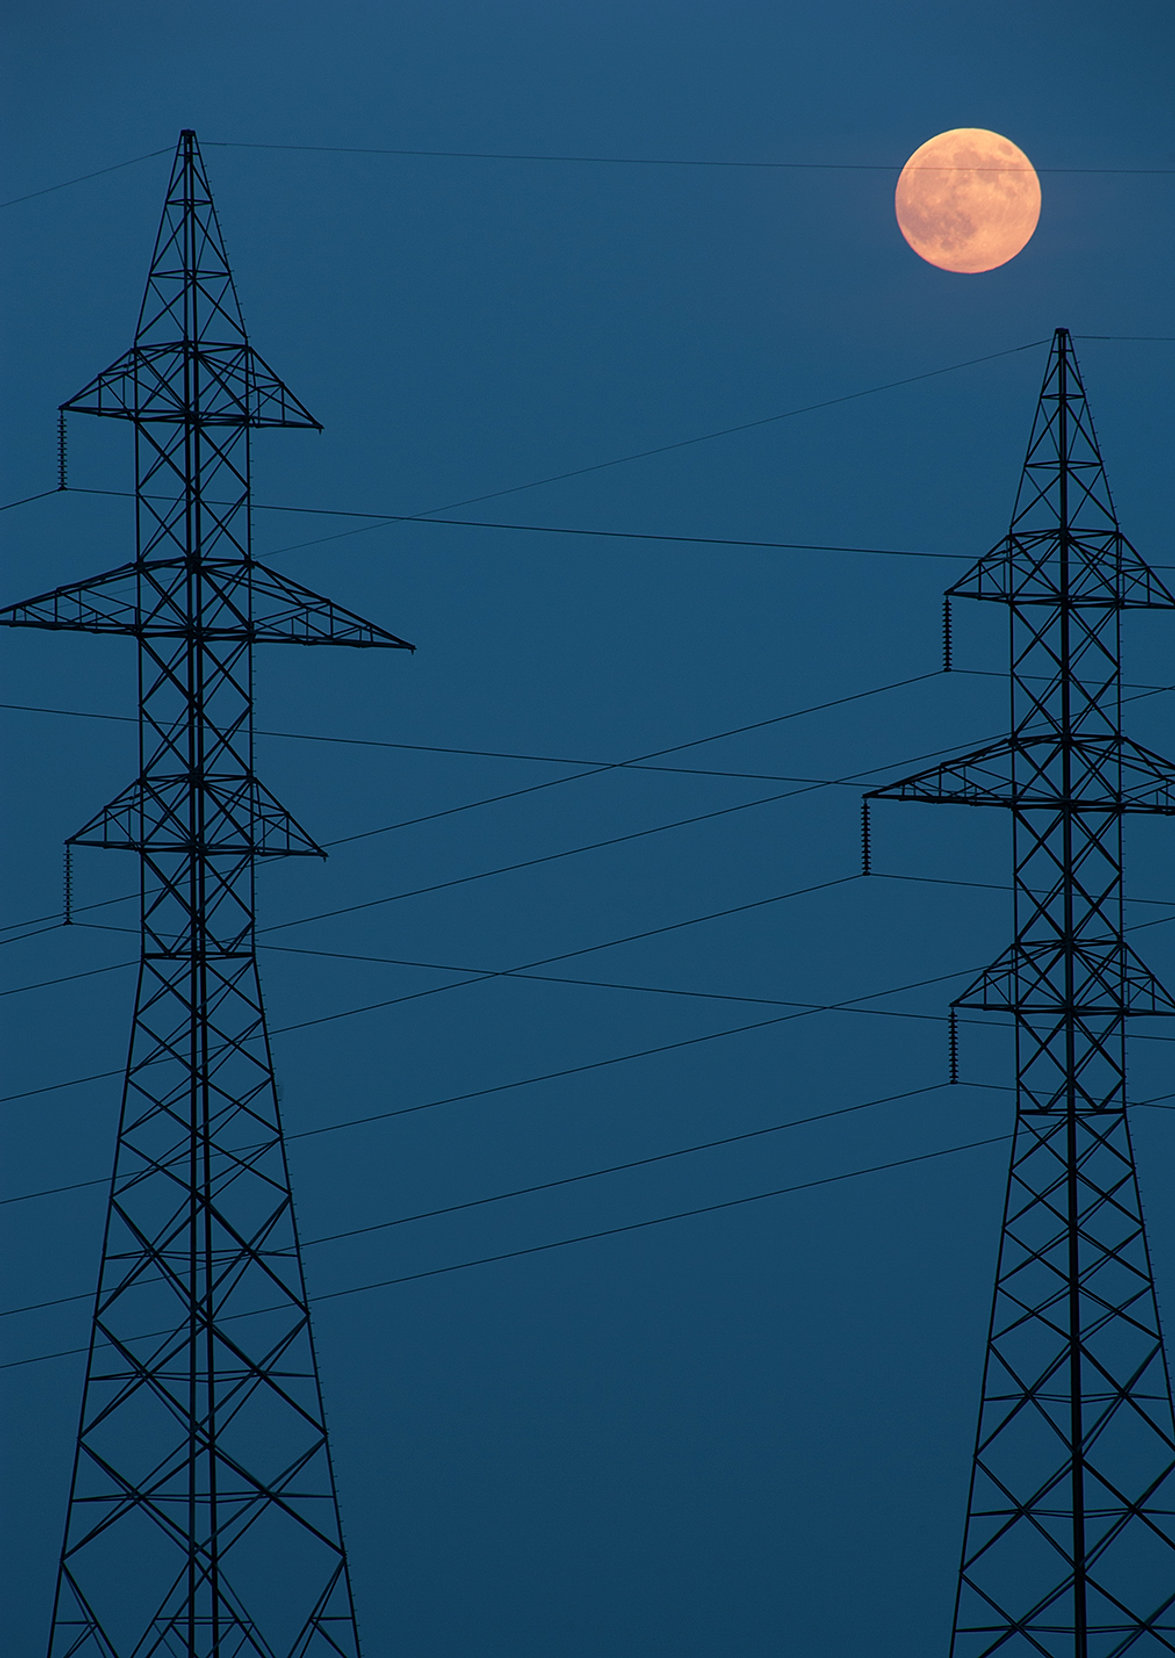 Power Lines With Super Moon